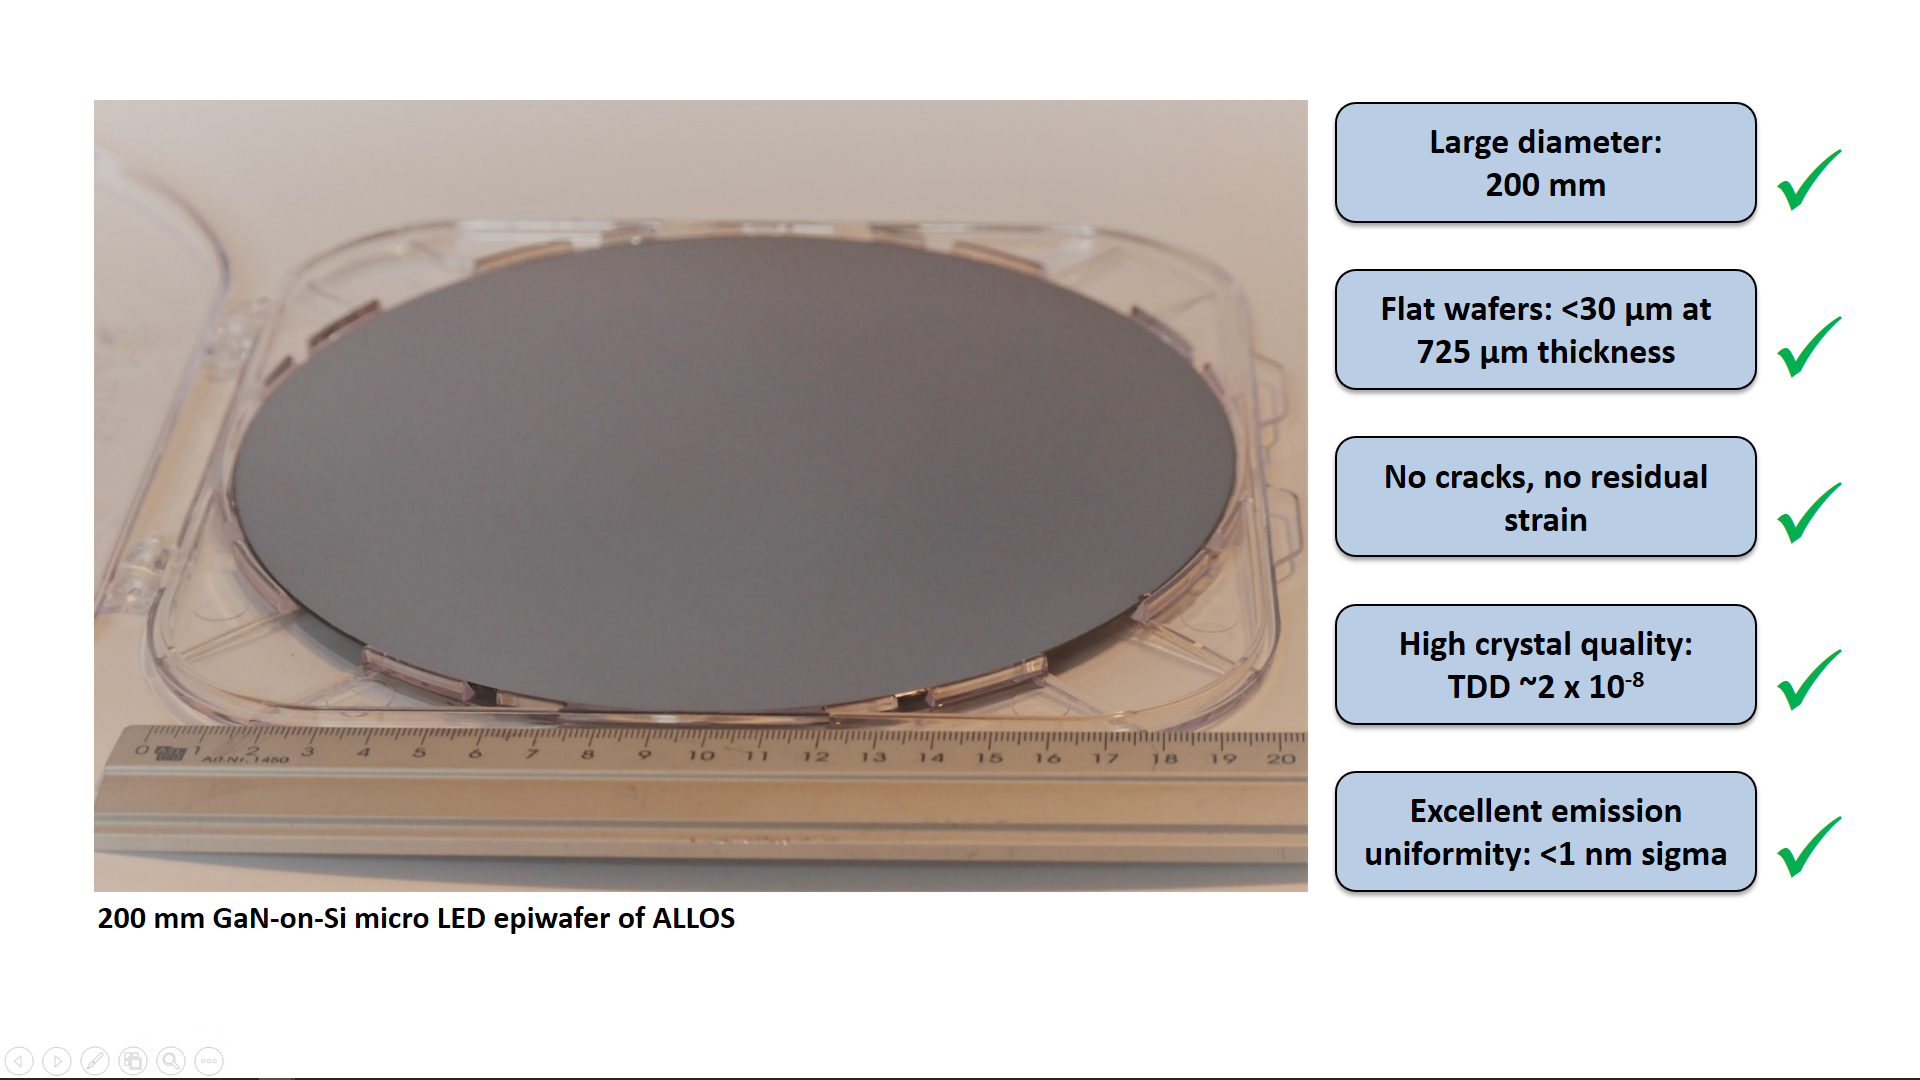 200 mm GaN-on-Si epiwafer for micro LEDs